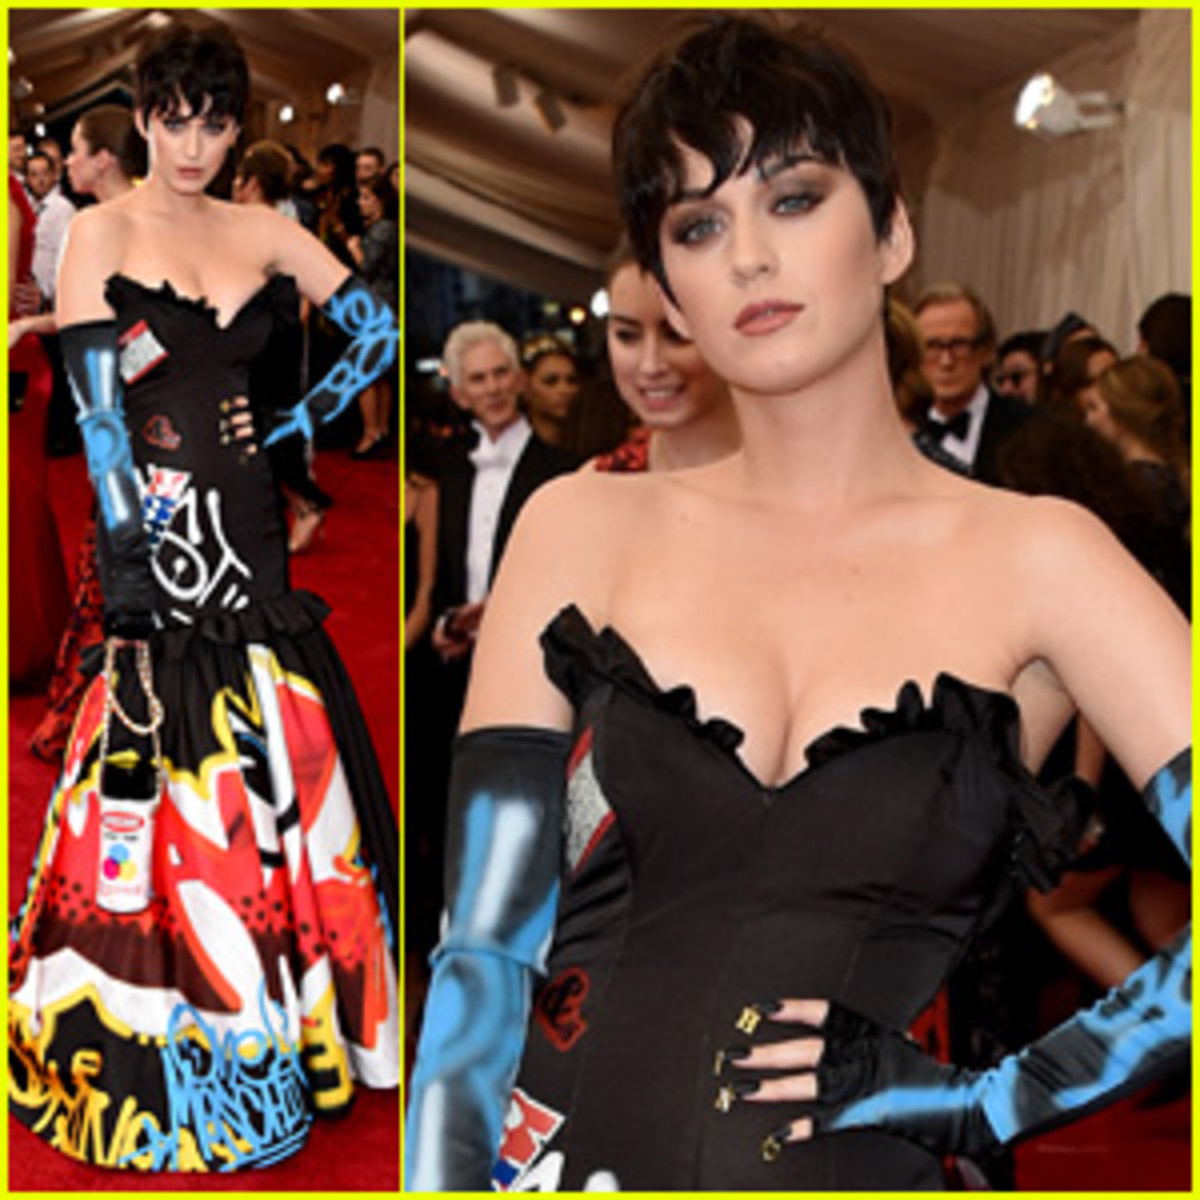 She wore a graffiti gown with a spray can purse by Moschino to the Met Gala 2015